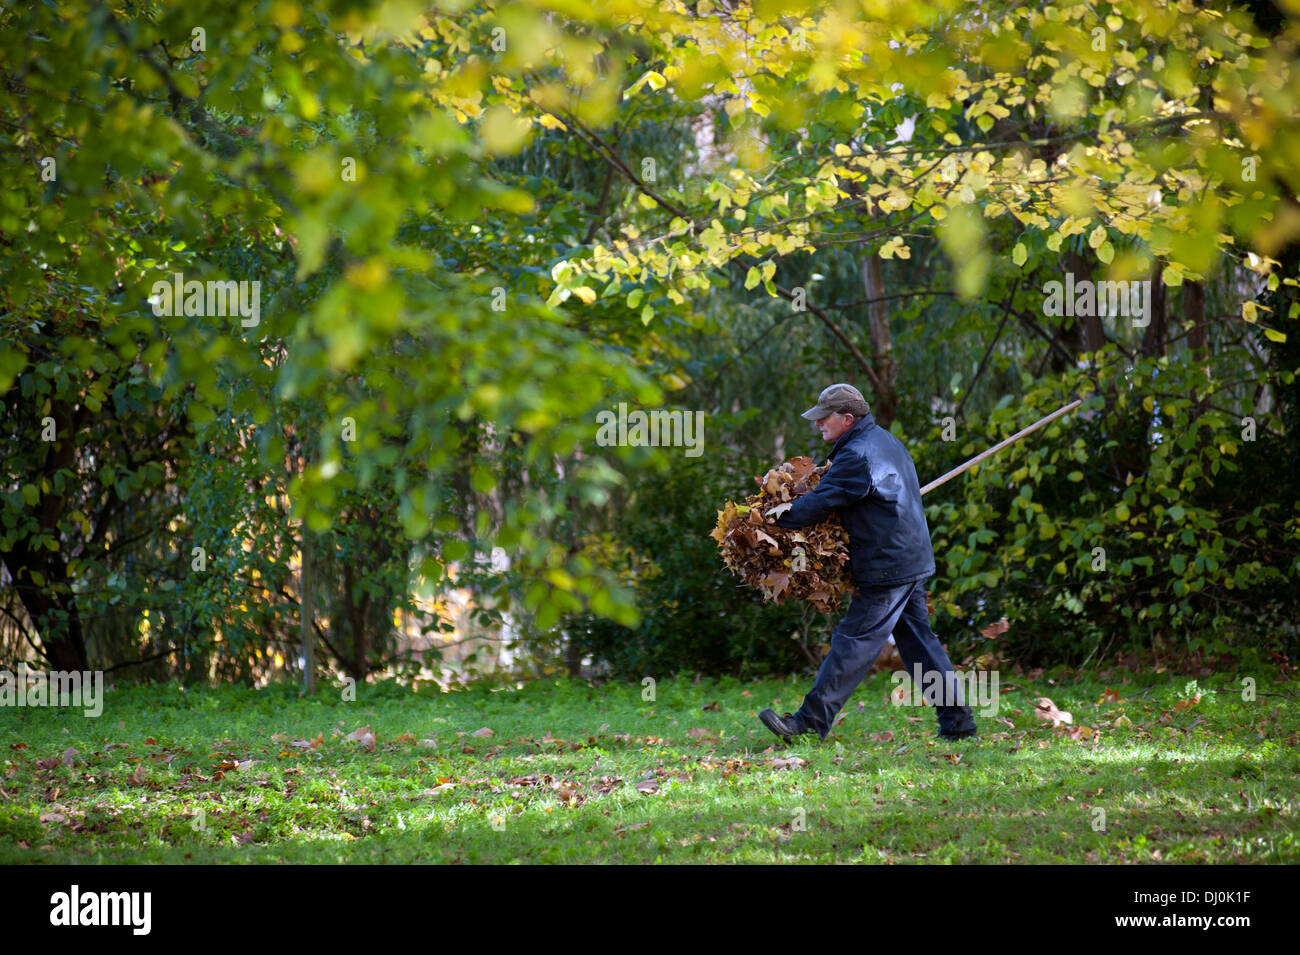 Autumn Colours in grounds of King's College, Cambridge, England. 15_11_2013 A gardener clears autumn leaves - Stock Image